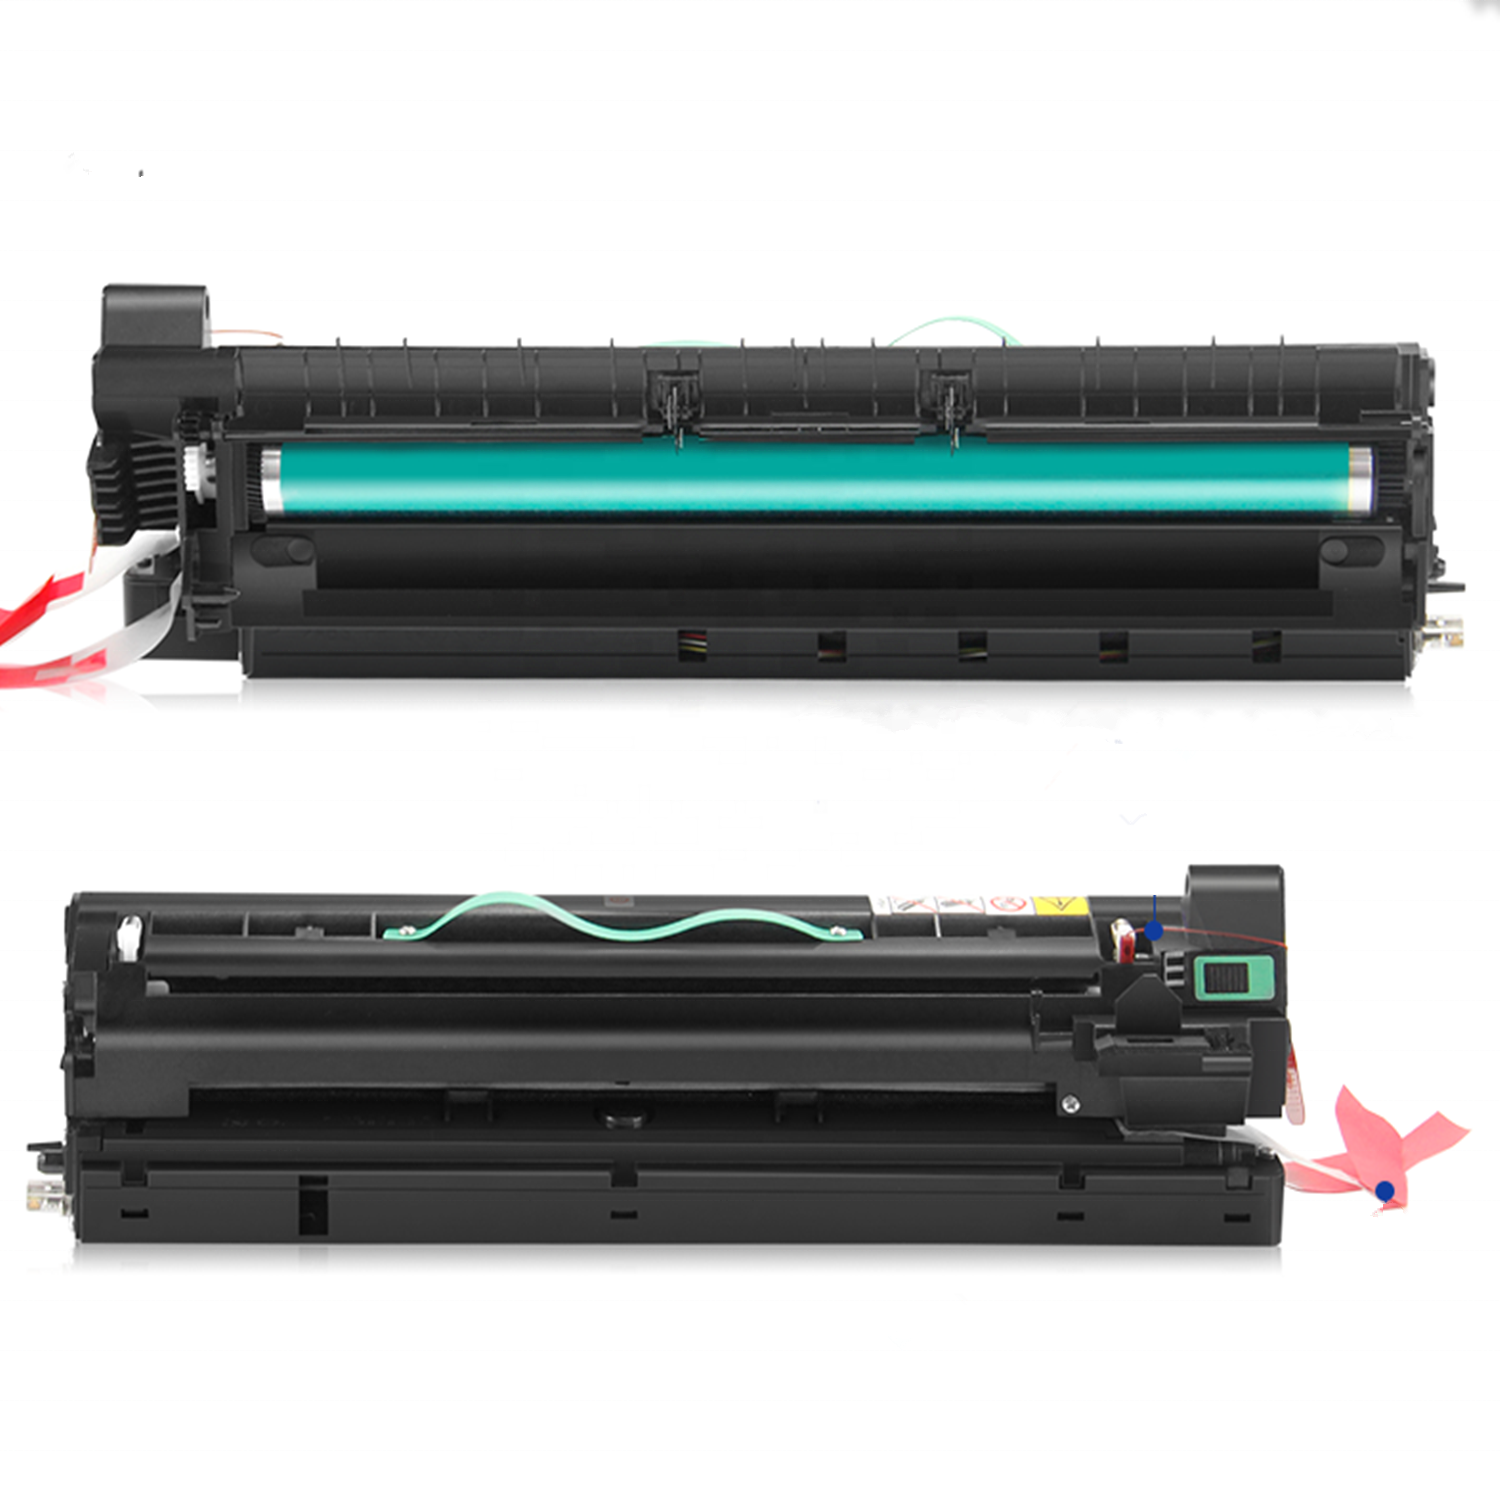 Kompatibel Ricoh Copier Aficio R2120D 2020D 1022 2022 2027 2032 MP2550B 2120D 1027 Drum Unit